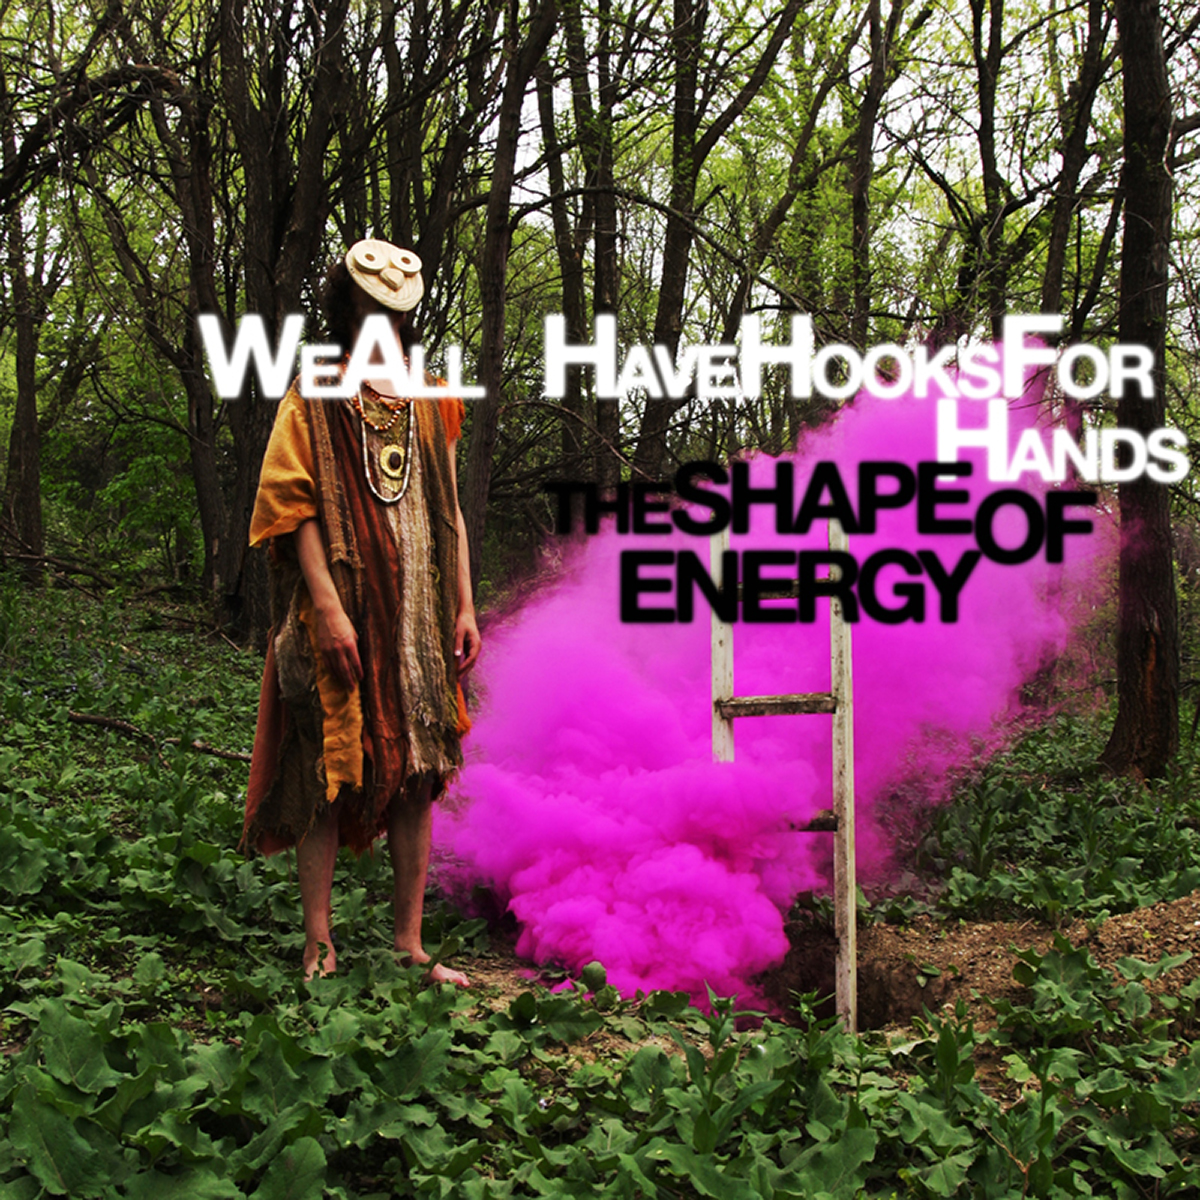 We All Have Hooks for Hands, The Shape of Energy